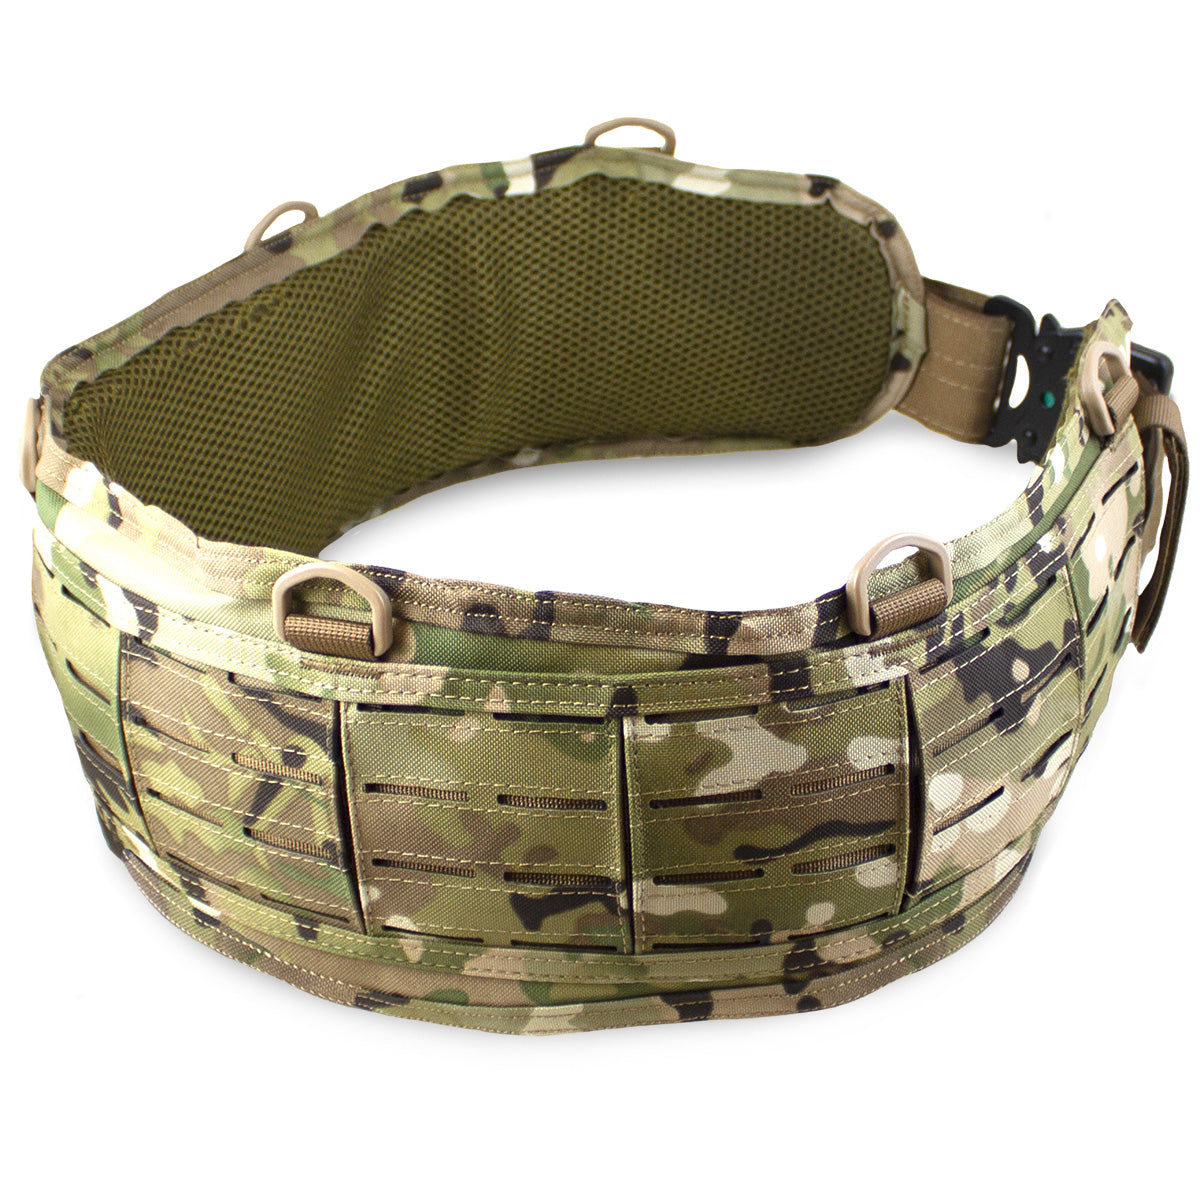 MK3 Padded MOLLE Belt MTC Camo | Bulldog Tactical Gear